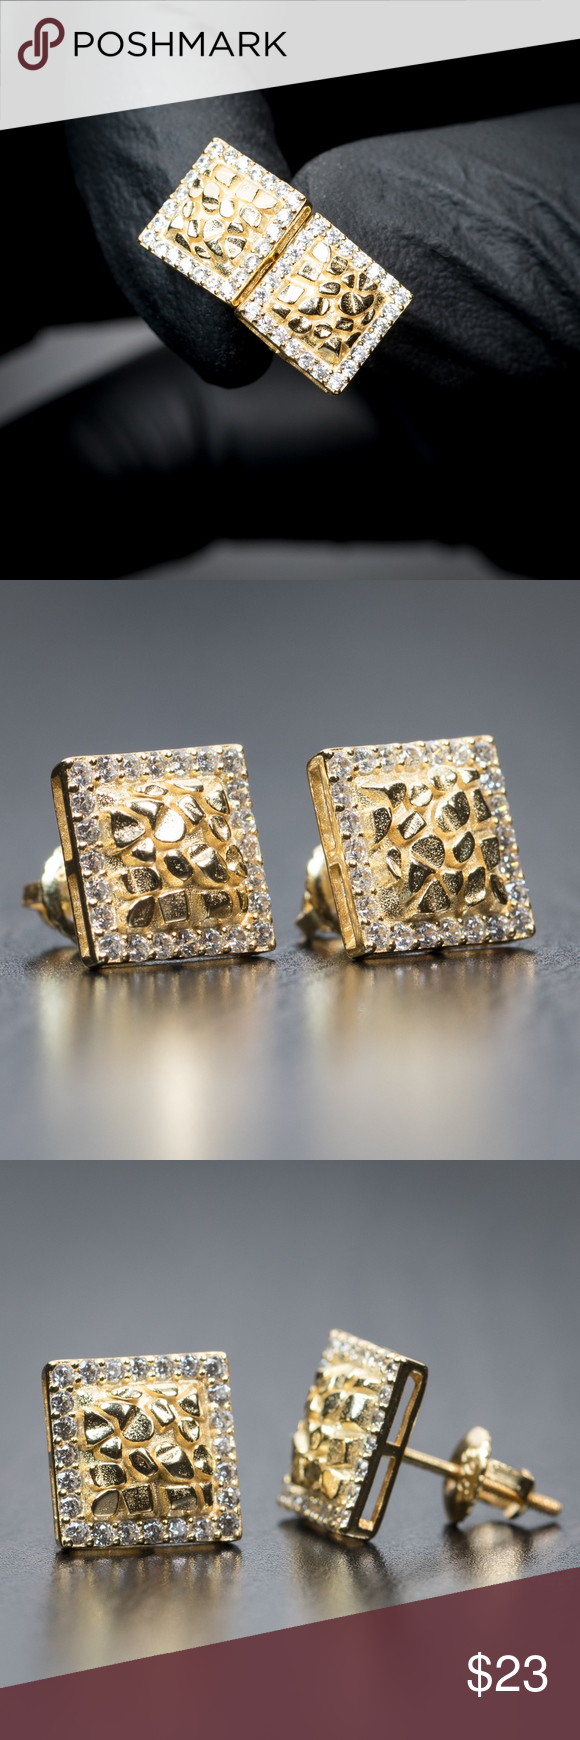 Number 23 Studs 14k Gold Plated Cz Hip Hop Screw Back Earrings